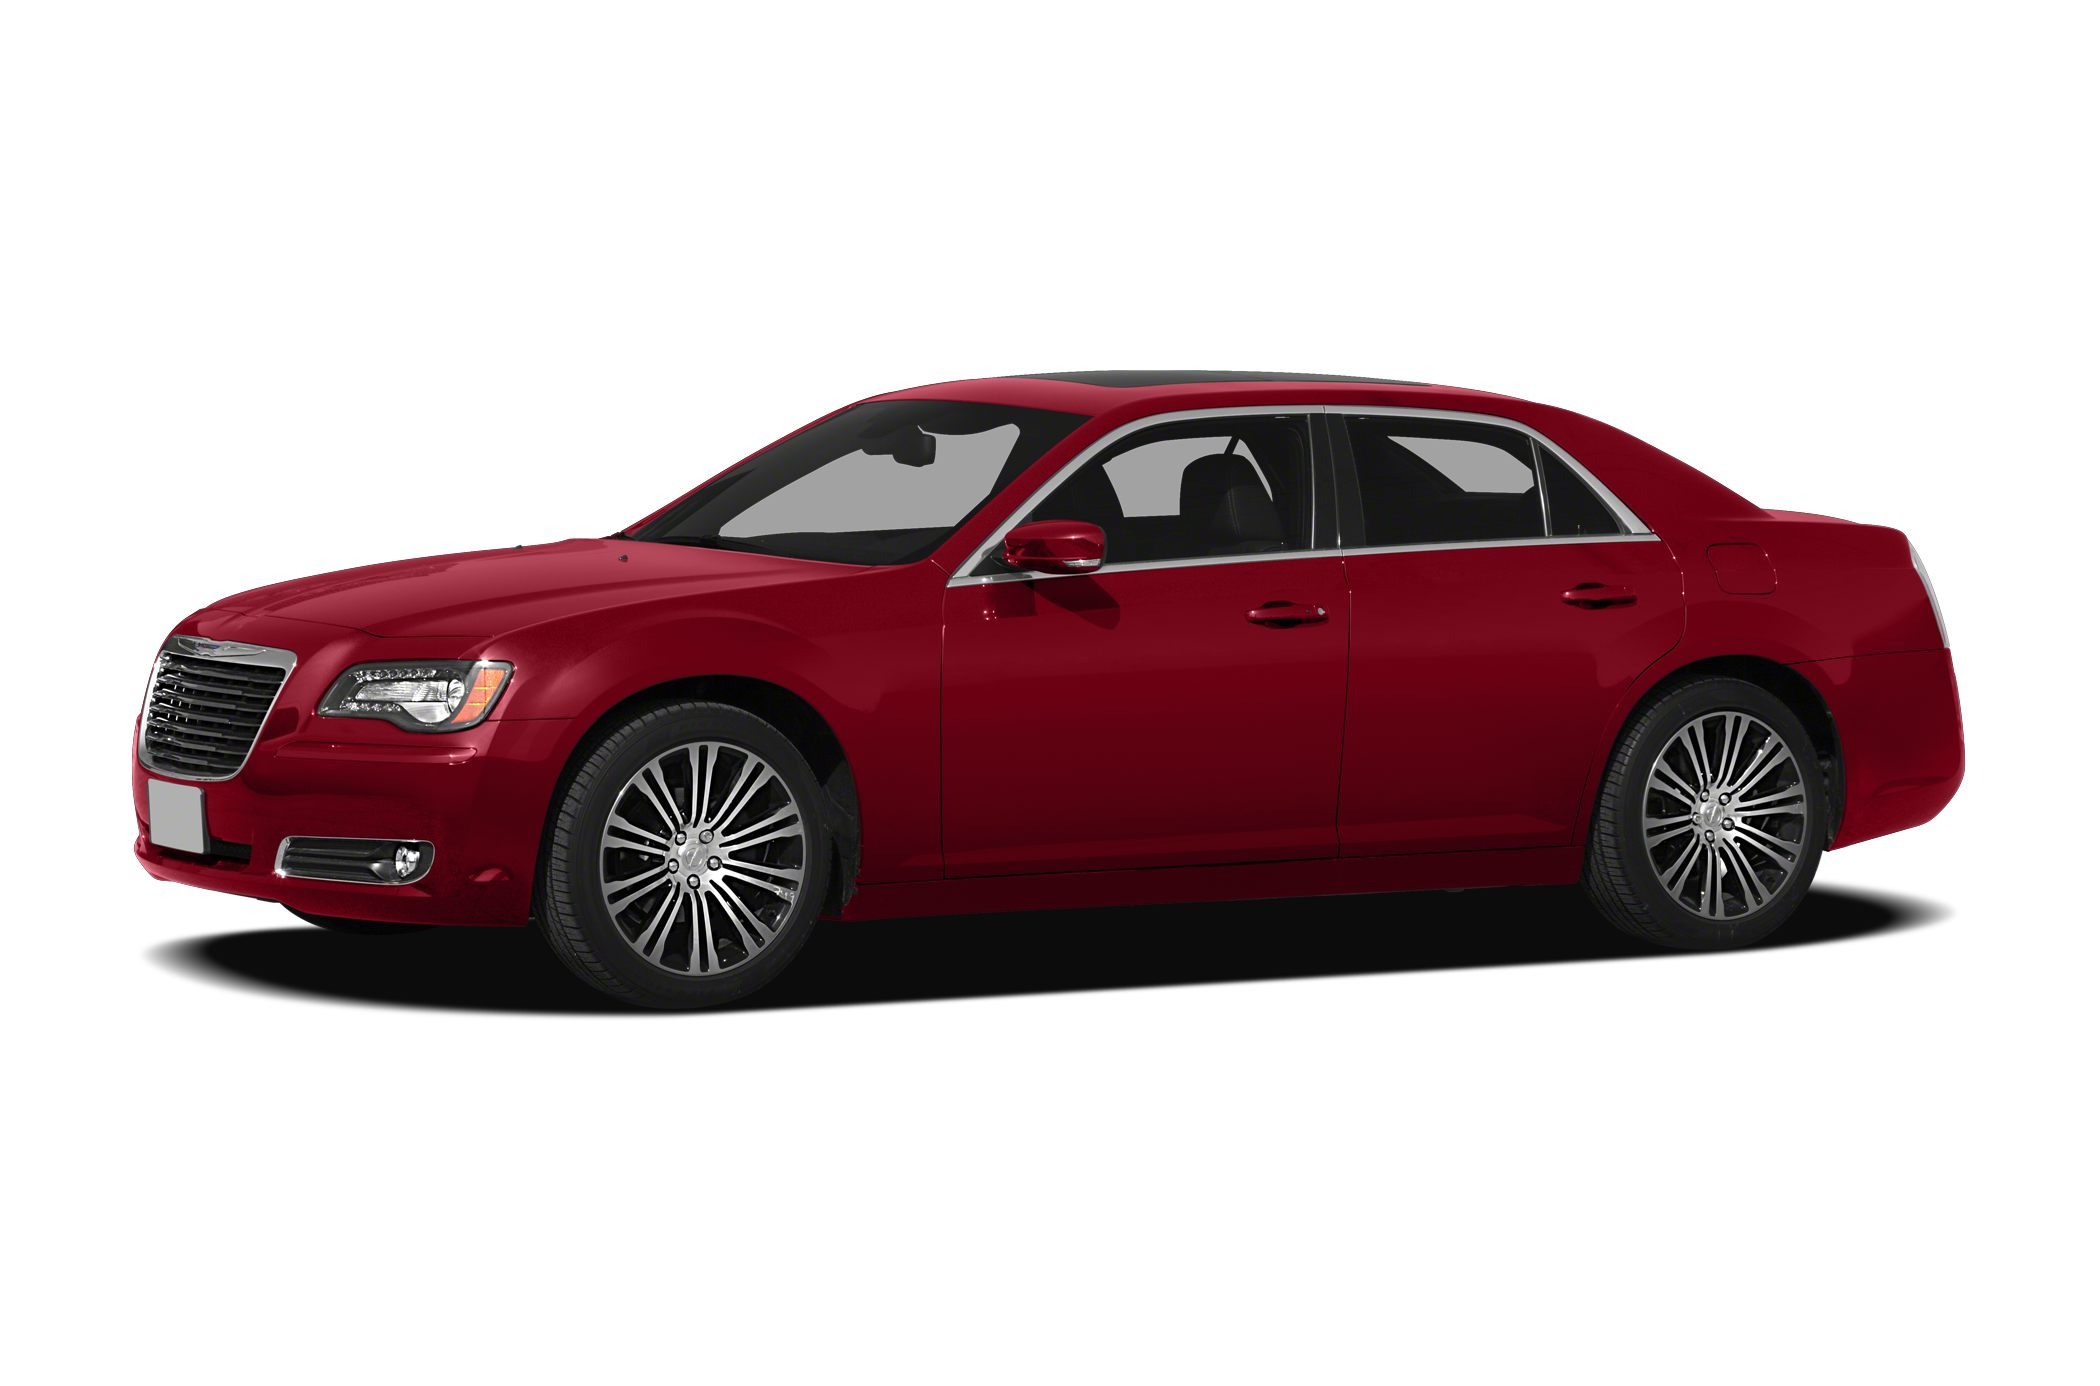 2012 Chrysler 300 S Sedan for sale in Tuscaloosa for $28,700 with 32,519 miles